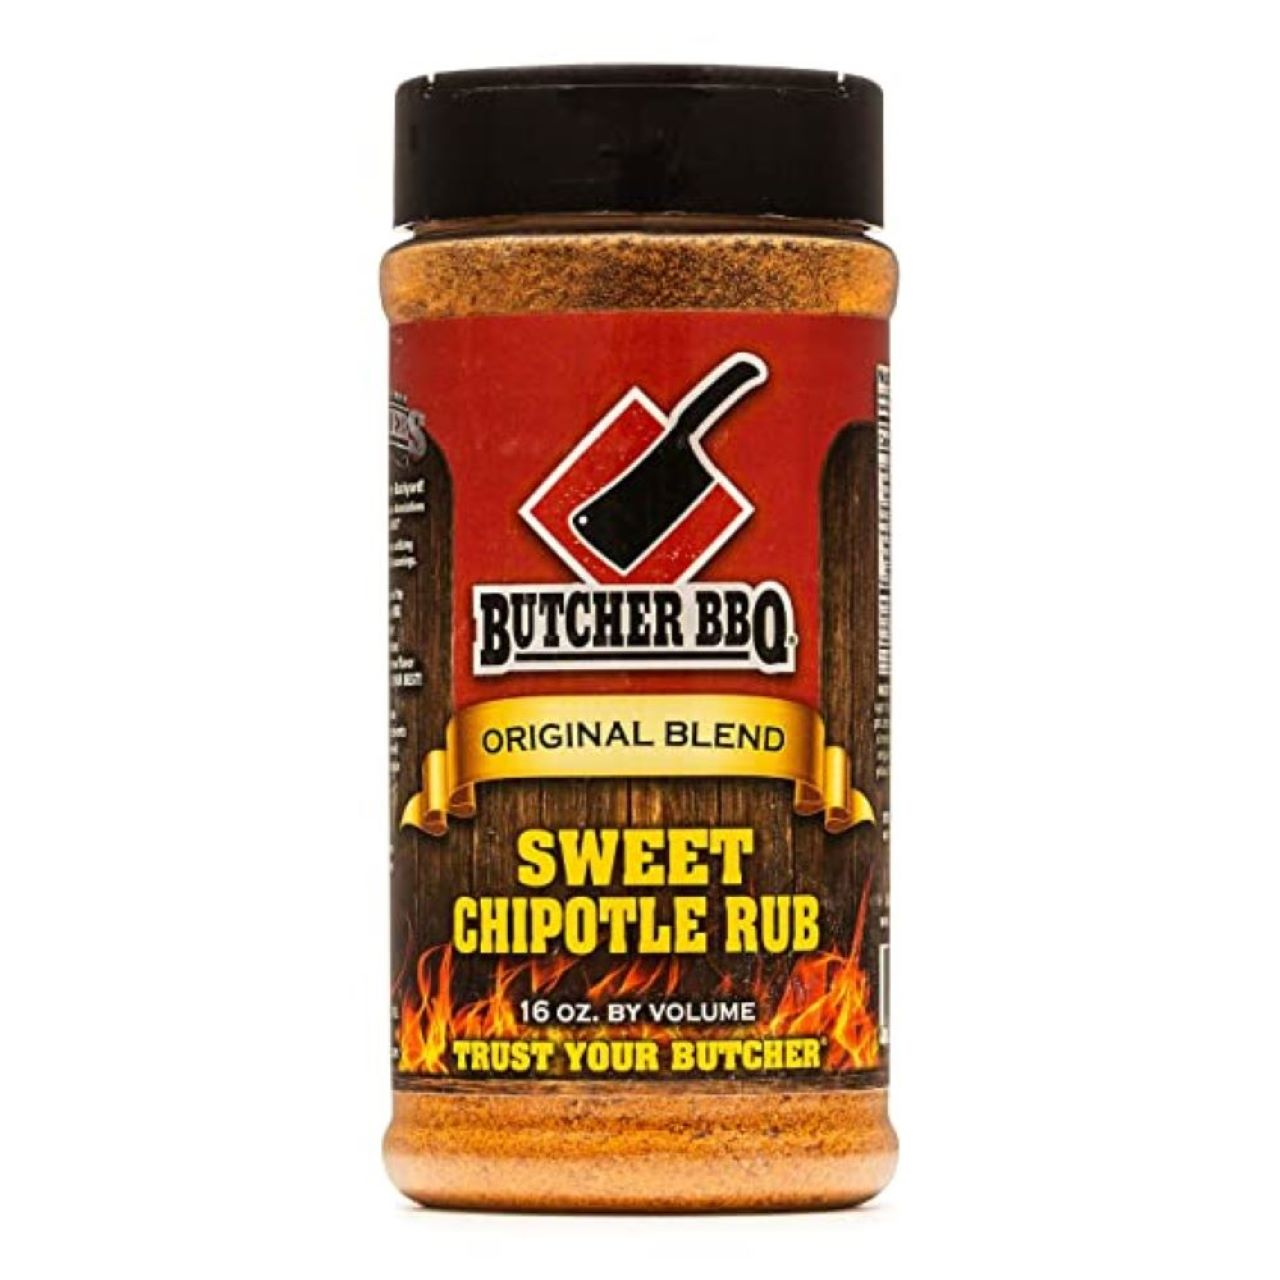 Butcher BBQ 16oz Sweet Chipotle Dry Rub Seasoning and Spices